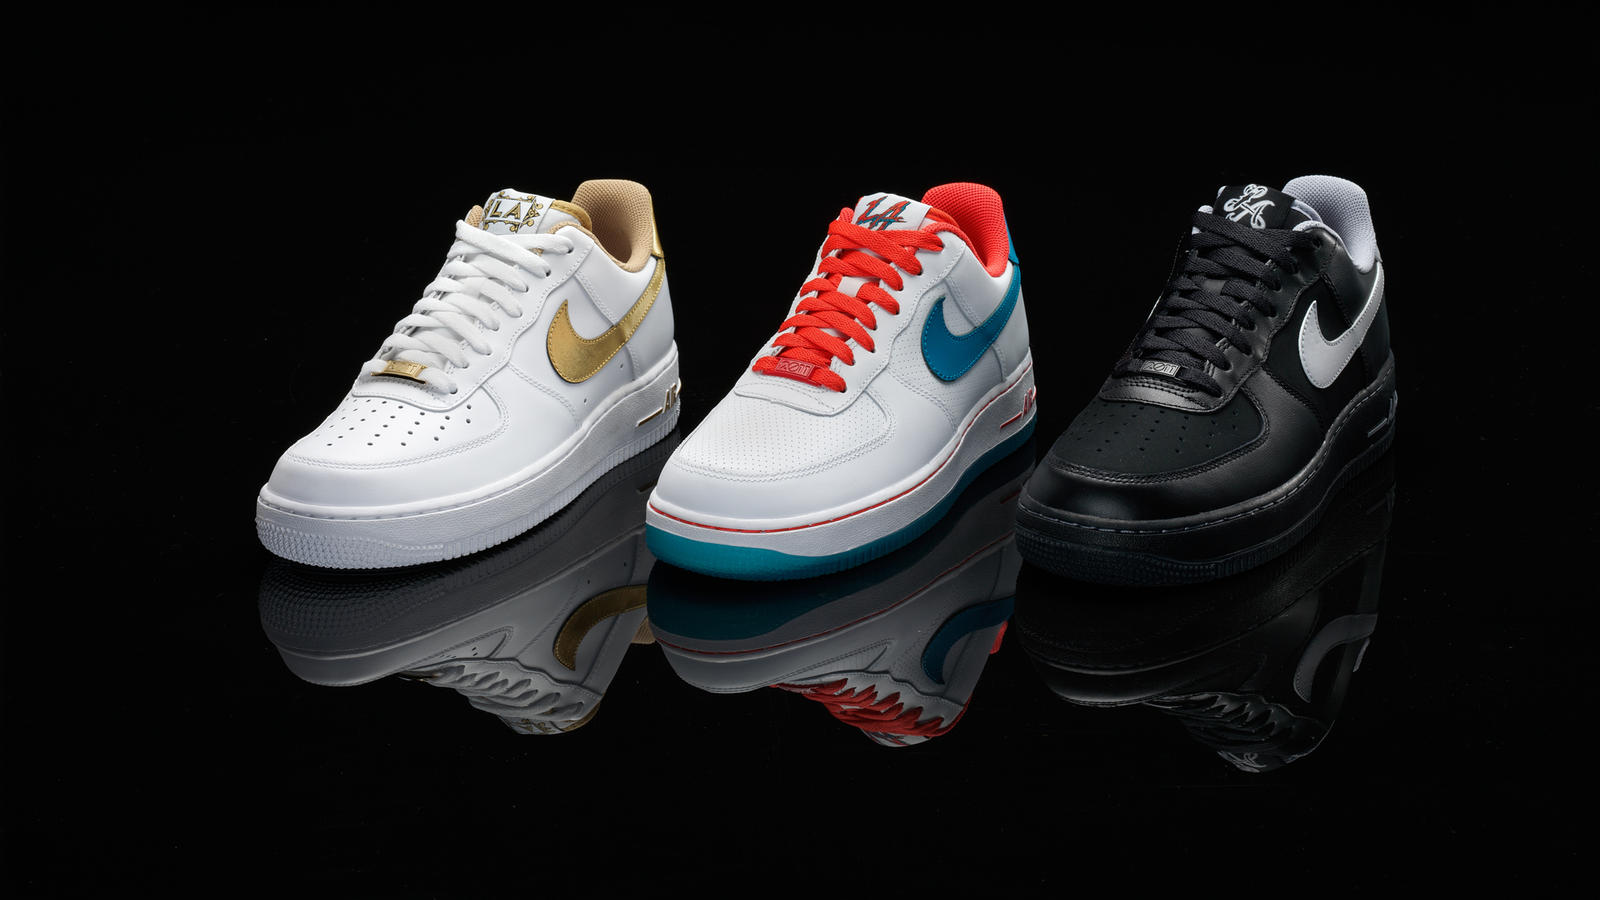 size 40 ab91d 8dac1 Air Force 1 2011 All-Star Pack - Nike News